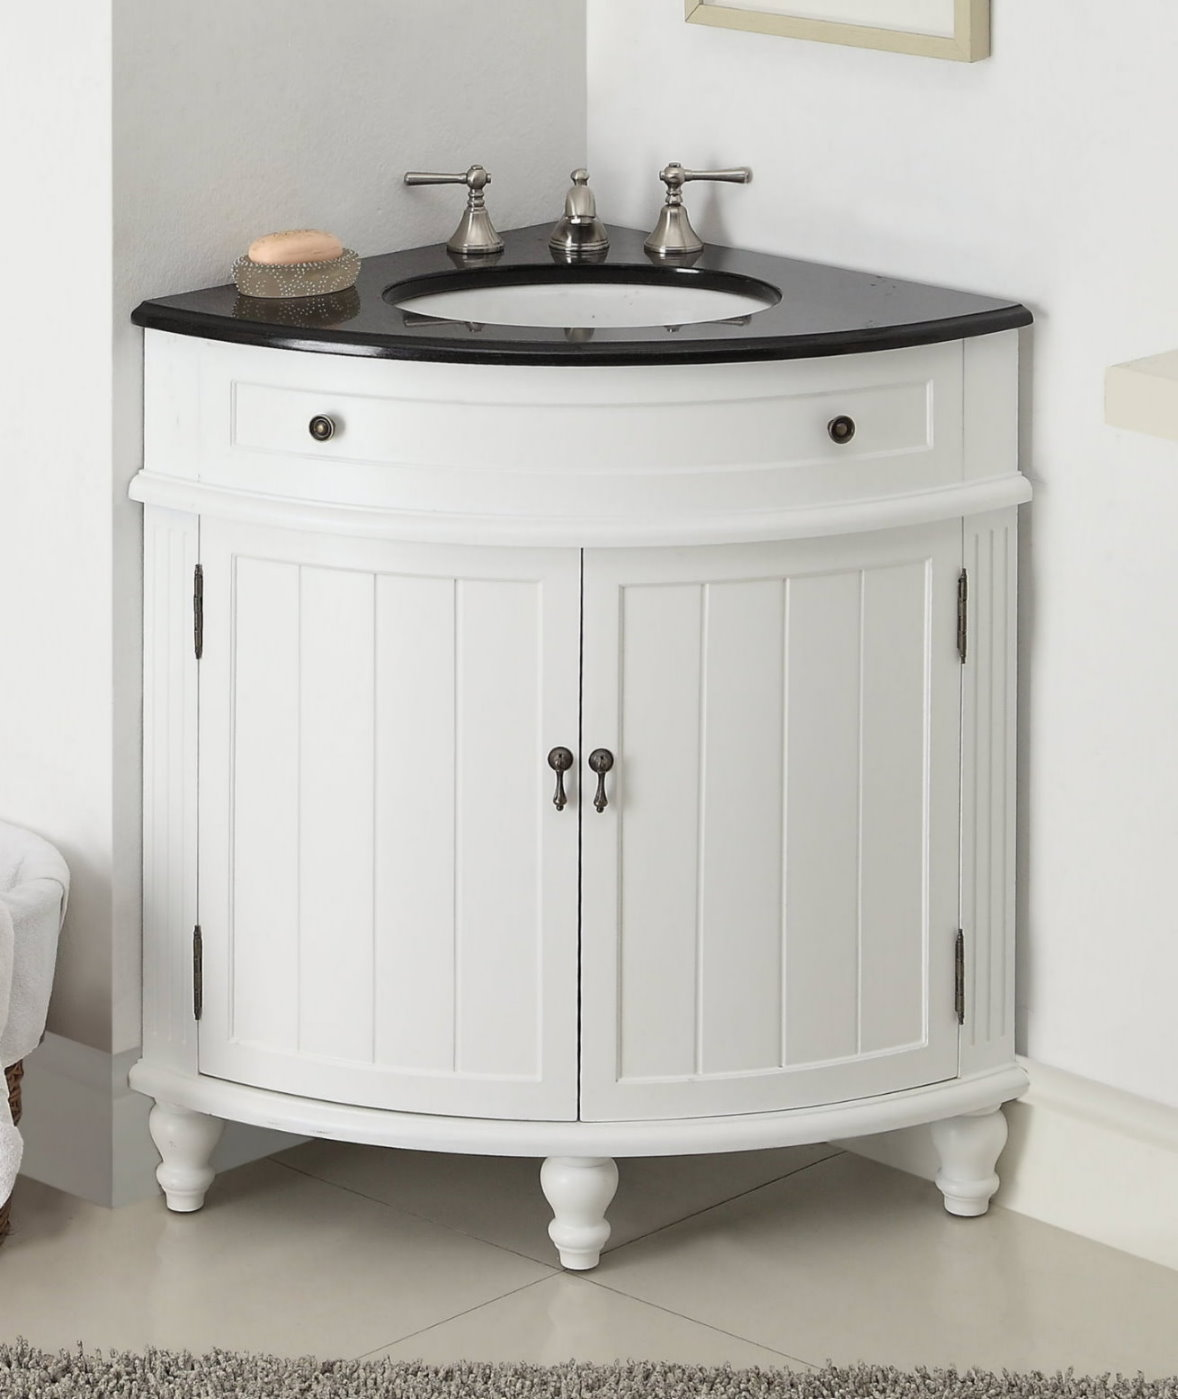 Bathroom Corner Sink Vanity : ... bathroom corner sink vanity corner bathroom vanity corner sink cabinet